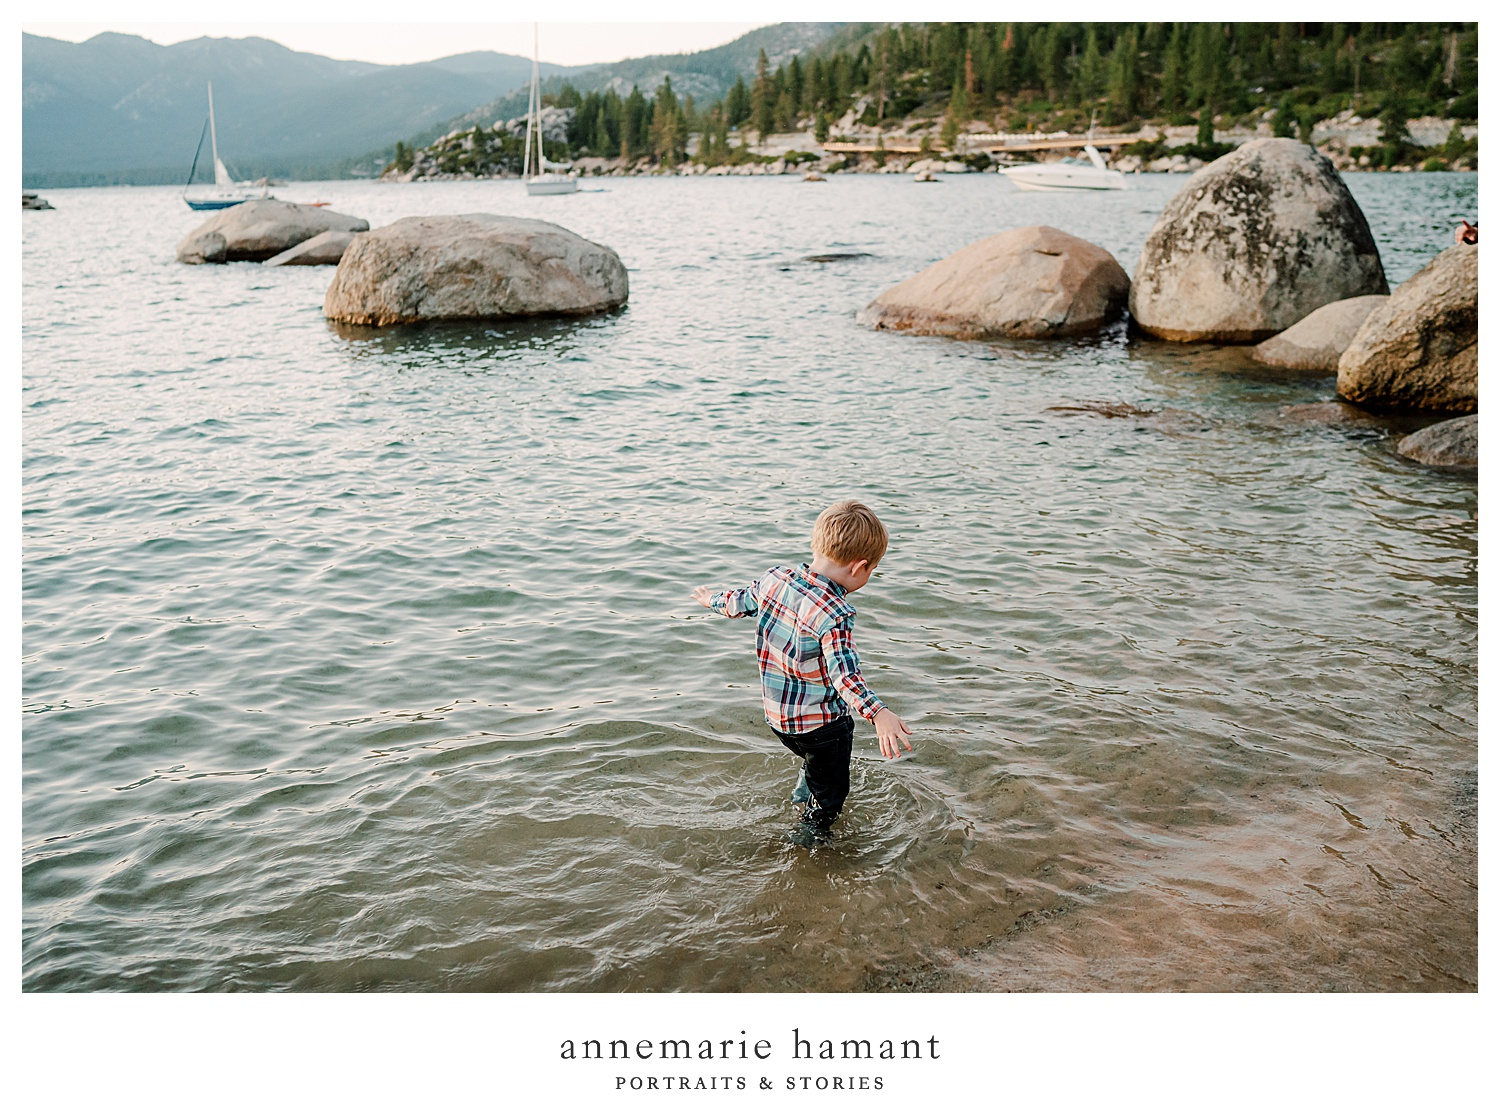 AnneMarie Hamant is a destination photographer who captures families exploring their favorite vacation destinations.